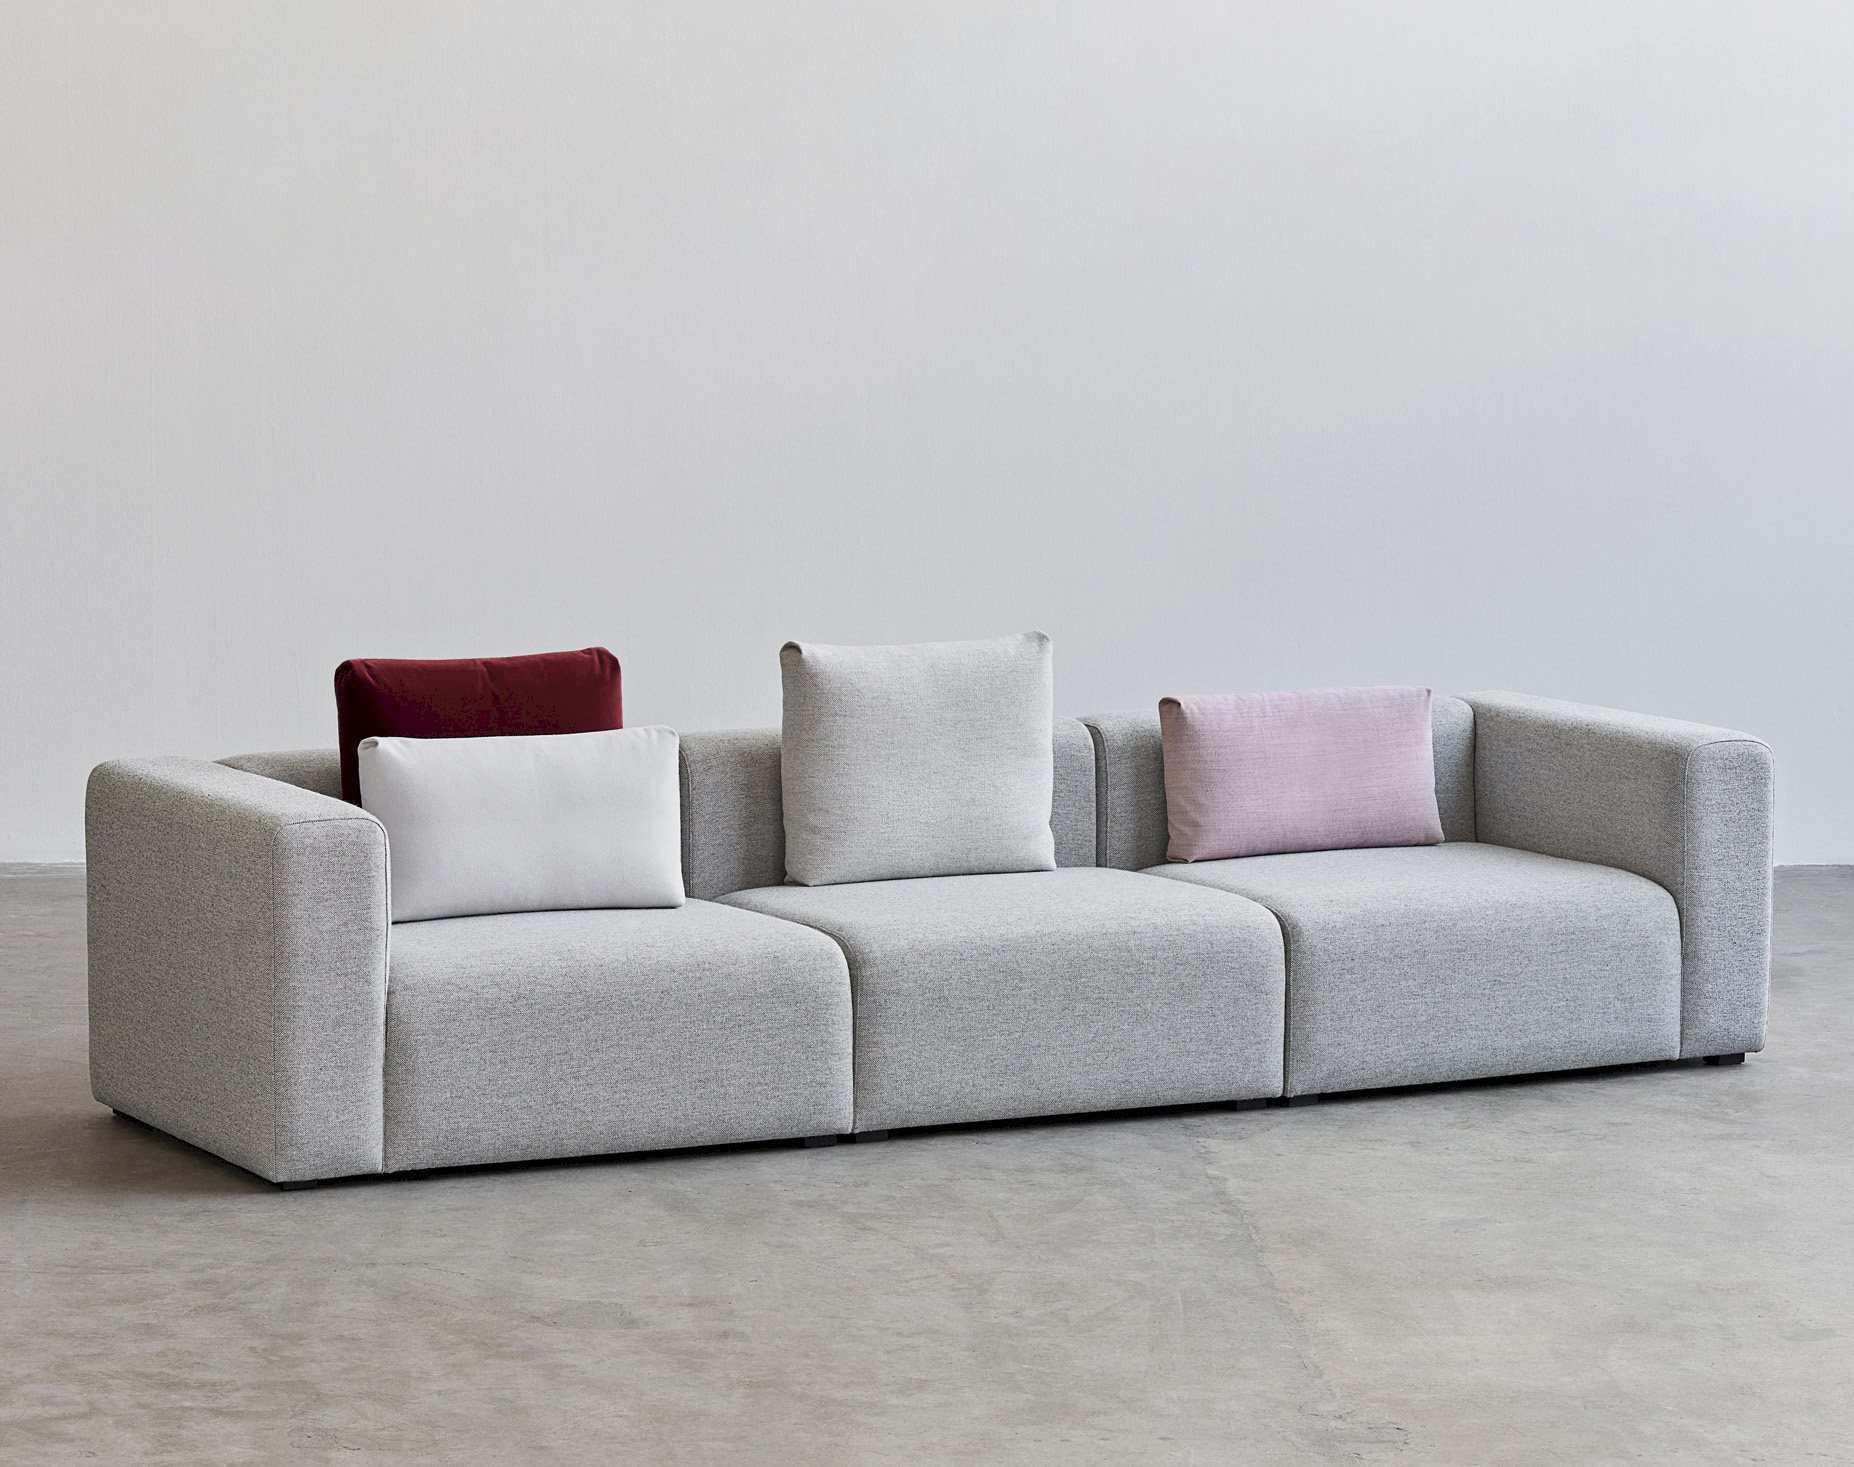 Mags Sofa Hay : Mags sofa has many upholstery options which enables the sofa to